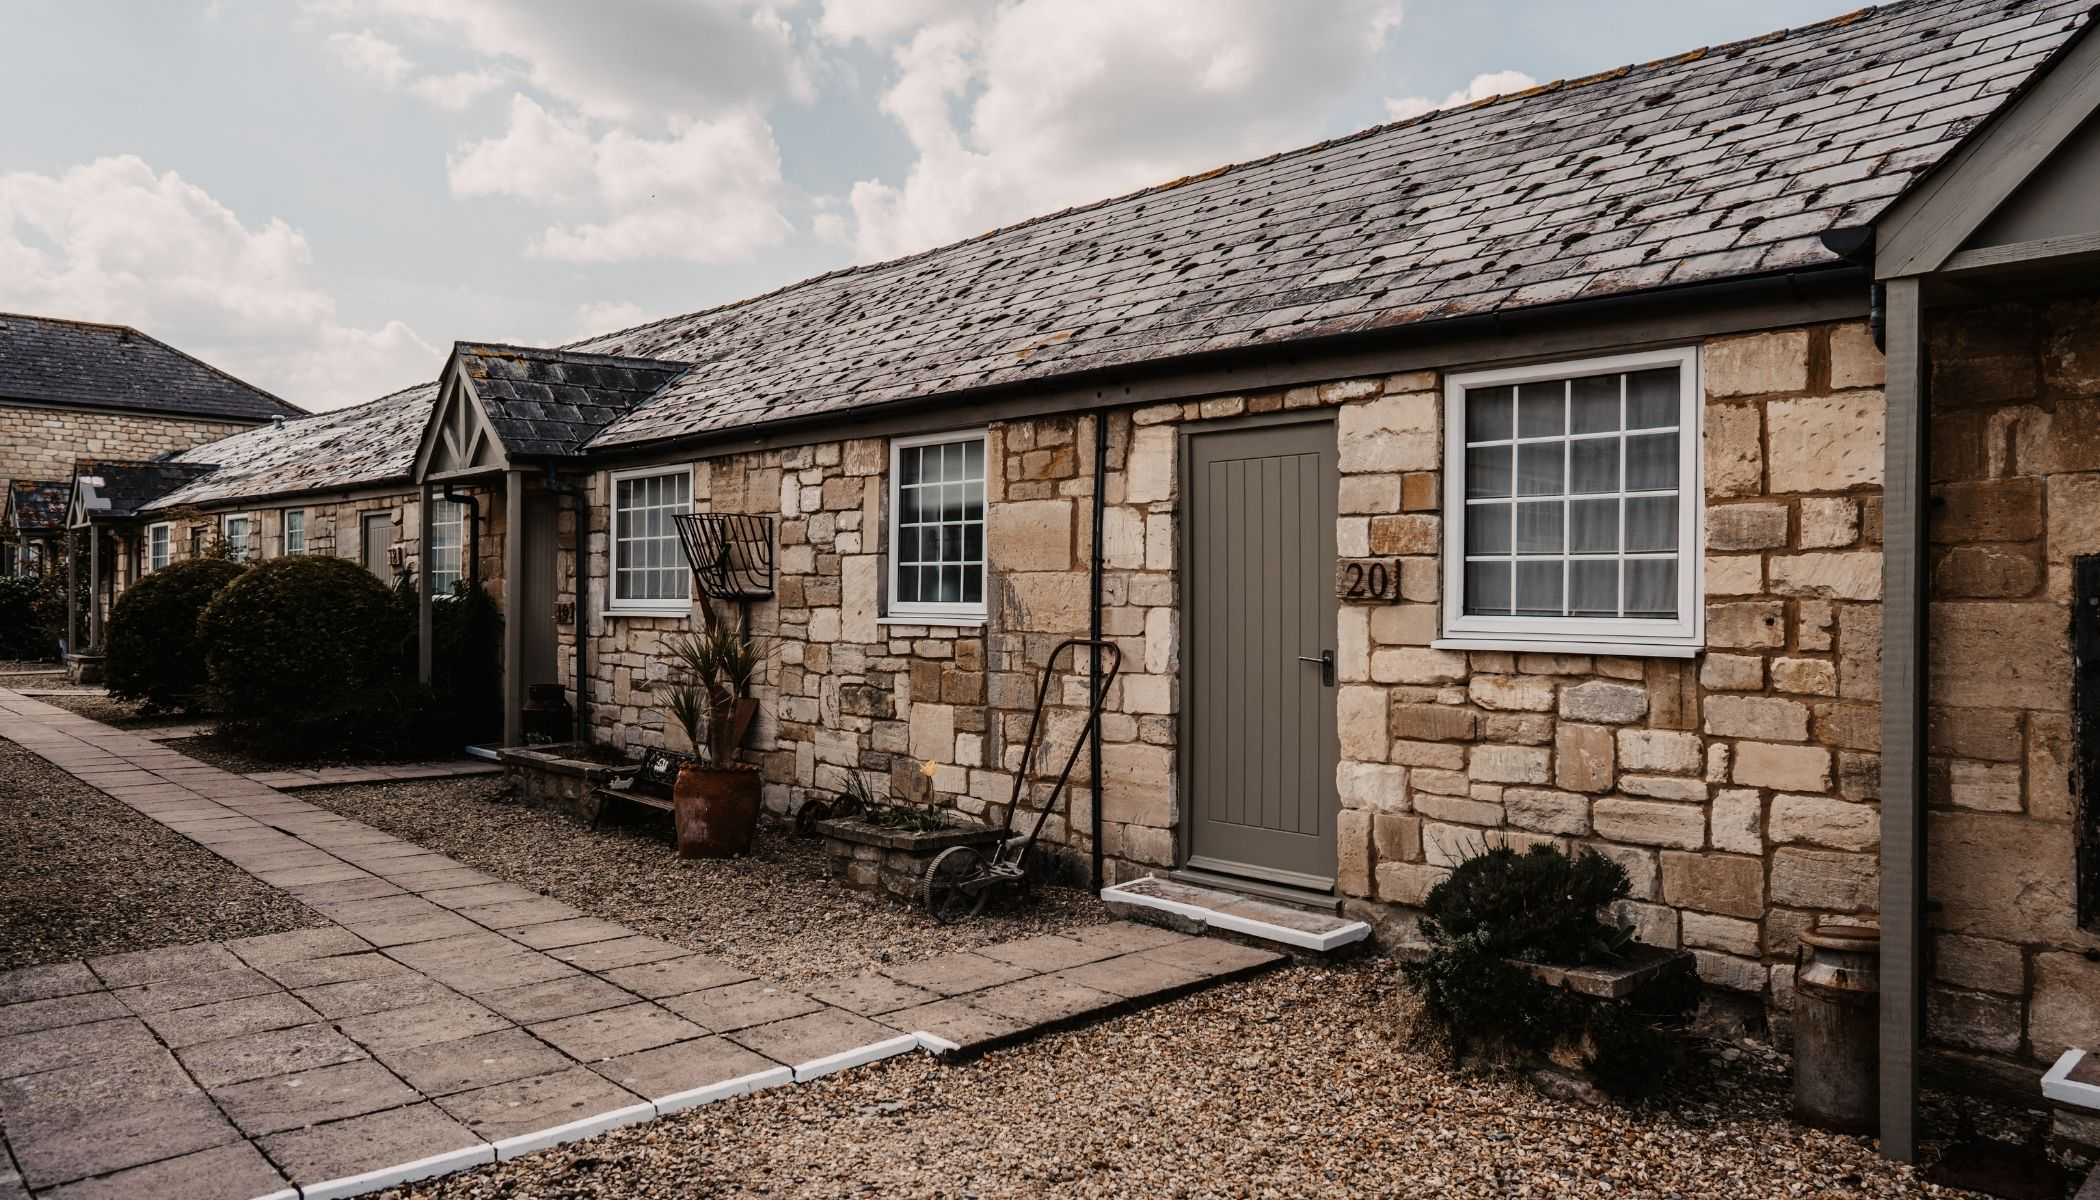 Converted stable block